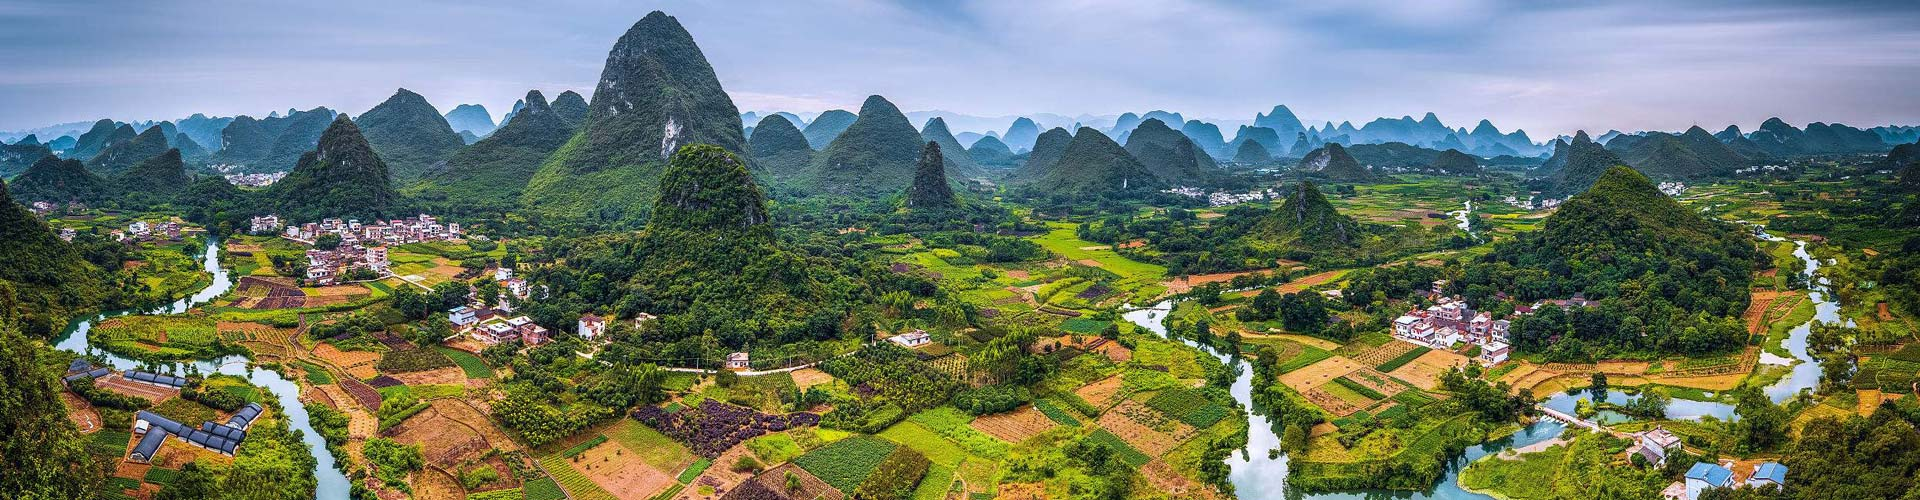 3 Days Guilin Essence and Li River Tour